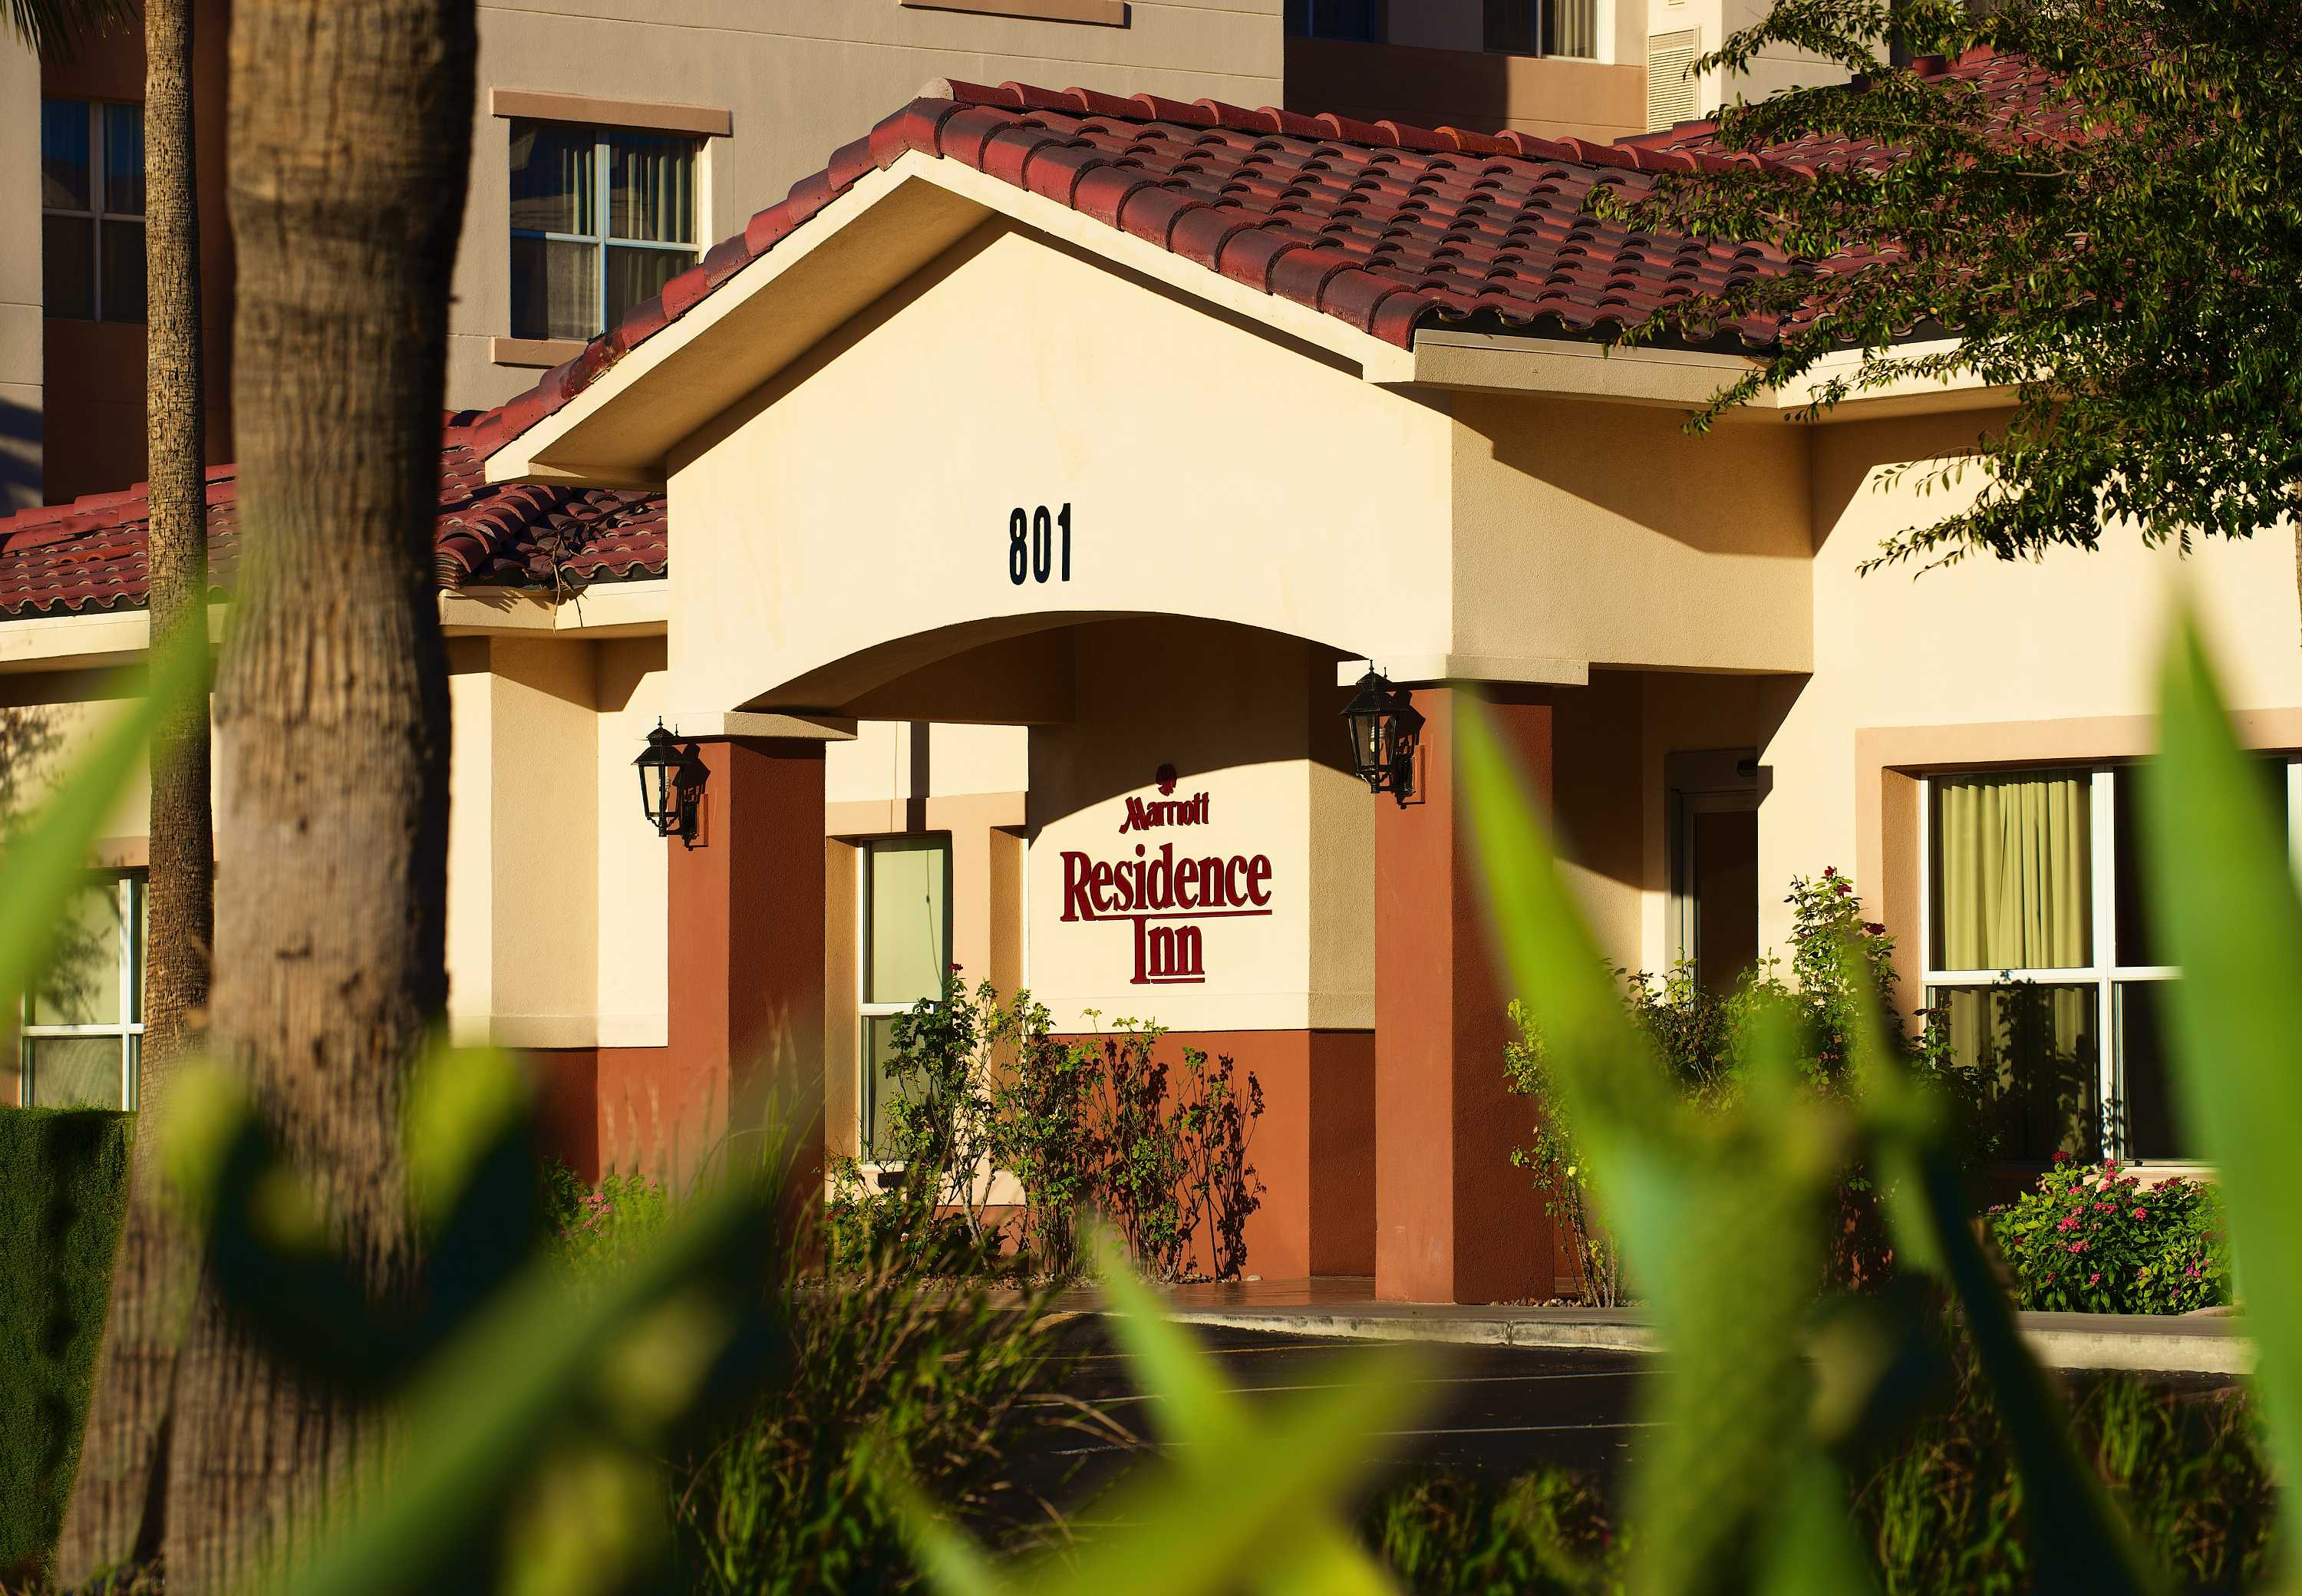 Residence Inn by Marriott Phoenix Airport image 3